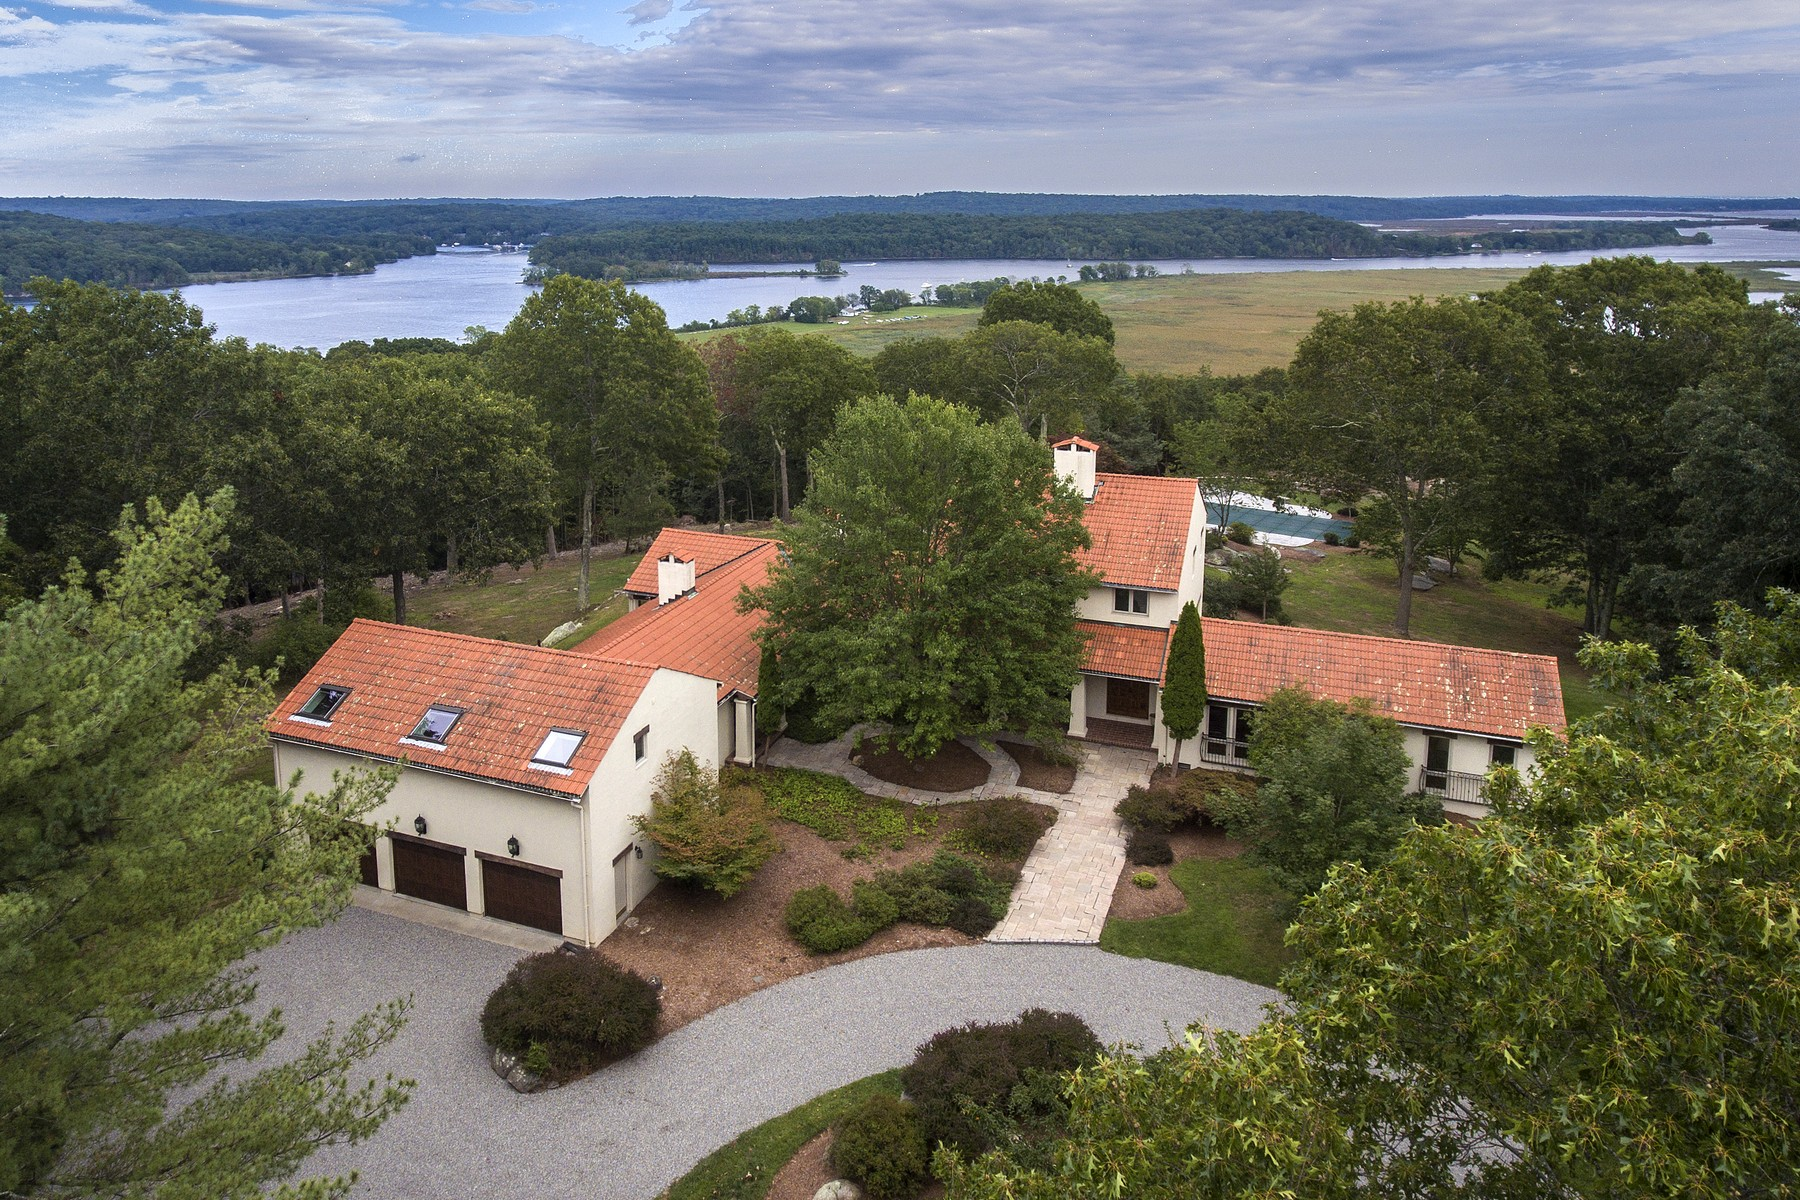 Single Family Home for Sale at Extraordinary European Designed Home on 10+ Acres 120 River Road Essex, Connecticut 06426 United States